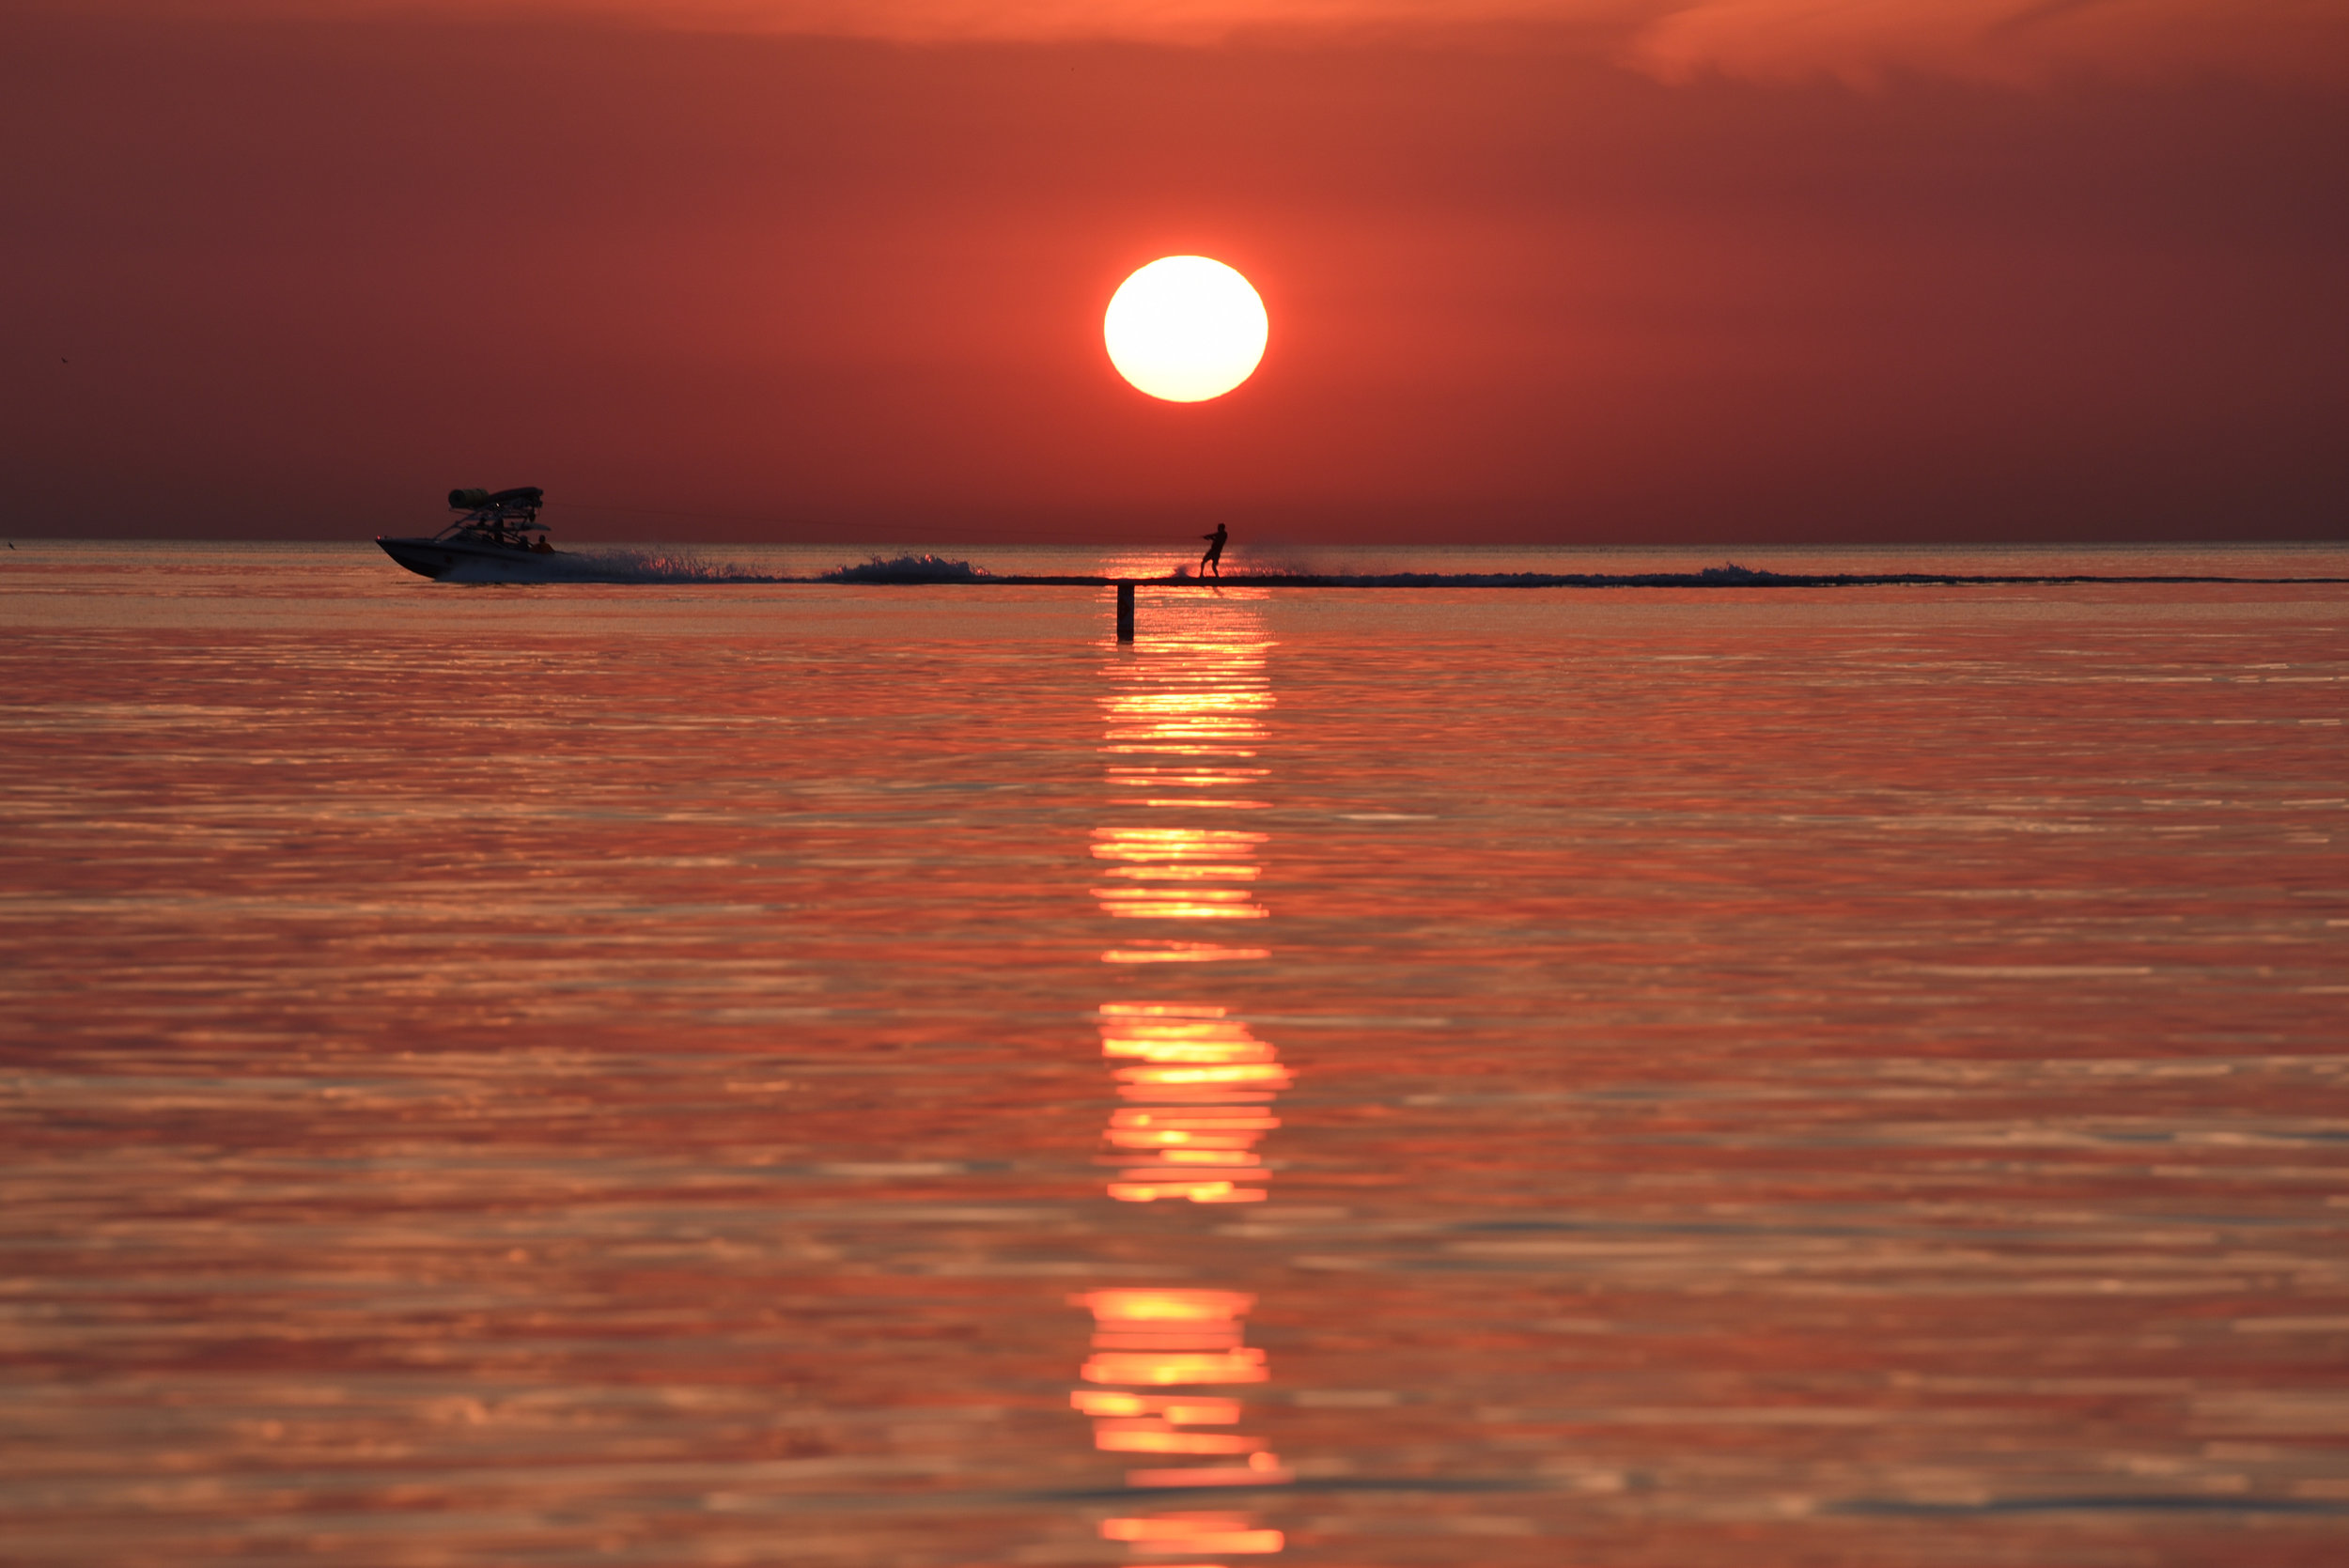 A boat pulls a waterskier through the reflection of the rising sun on Lake Michigan, Tuesday, Aug. 1, 2017 in Chicago. (AP Photo/G-Jun Yam)